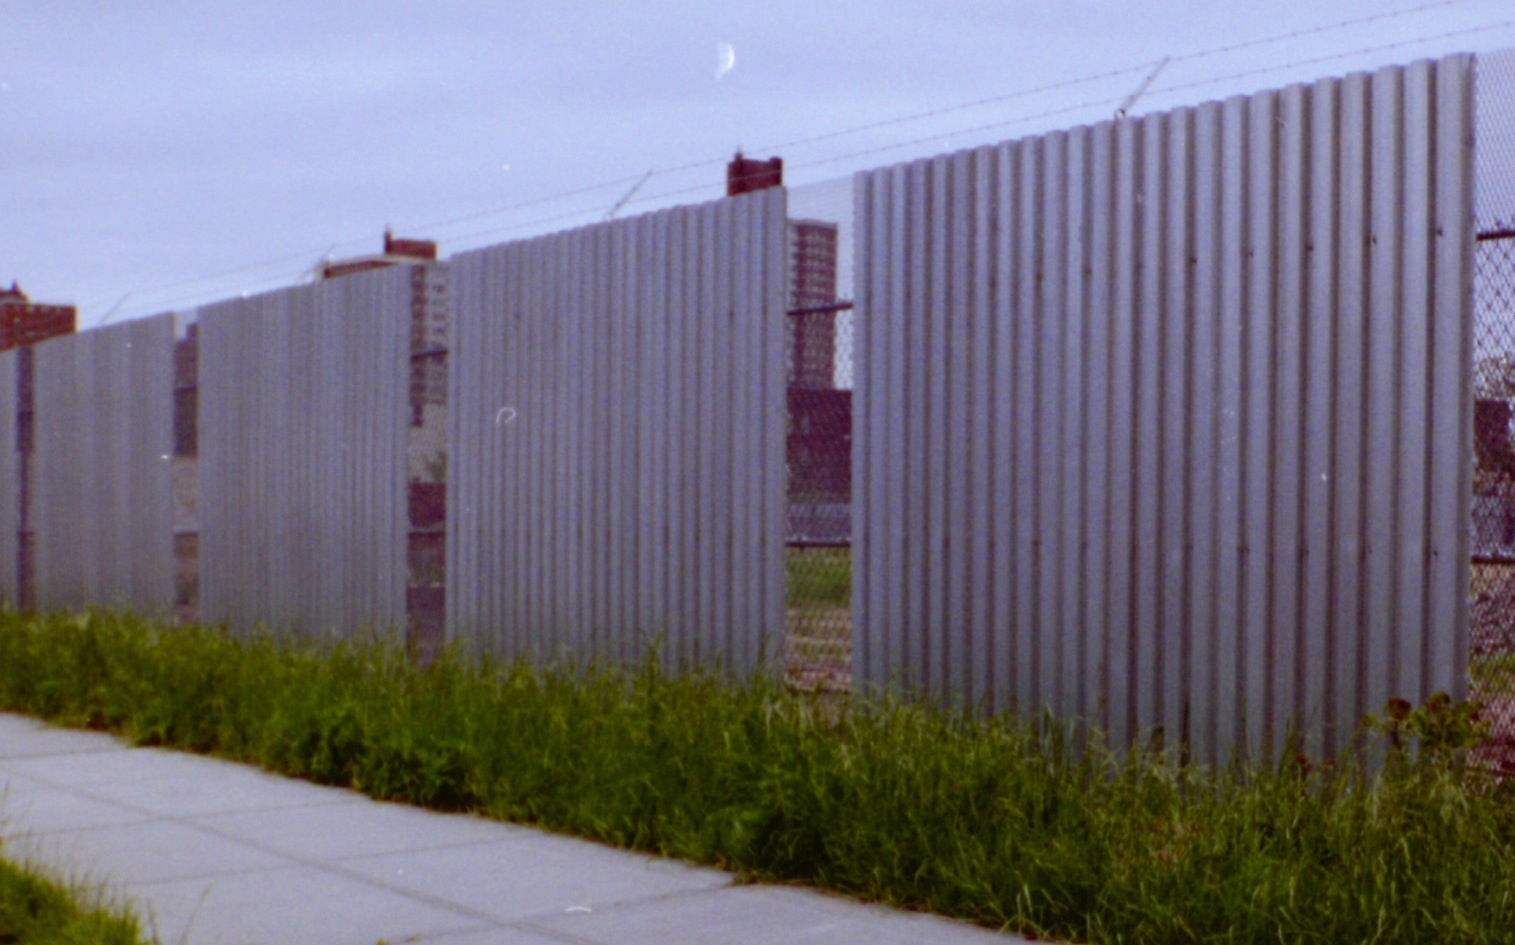 Expanded Metal And Corrugated Steel Deck Combo 10 Fence With Barded Wire Queens